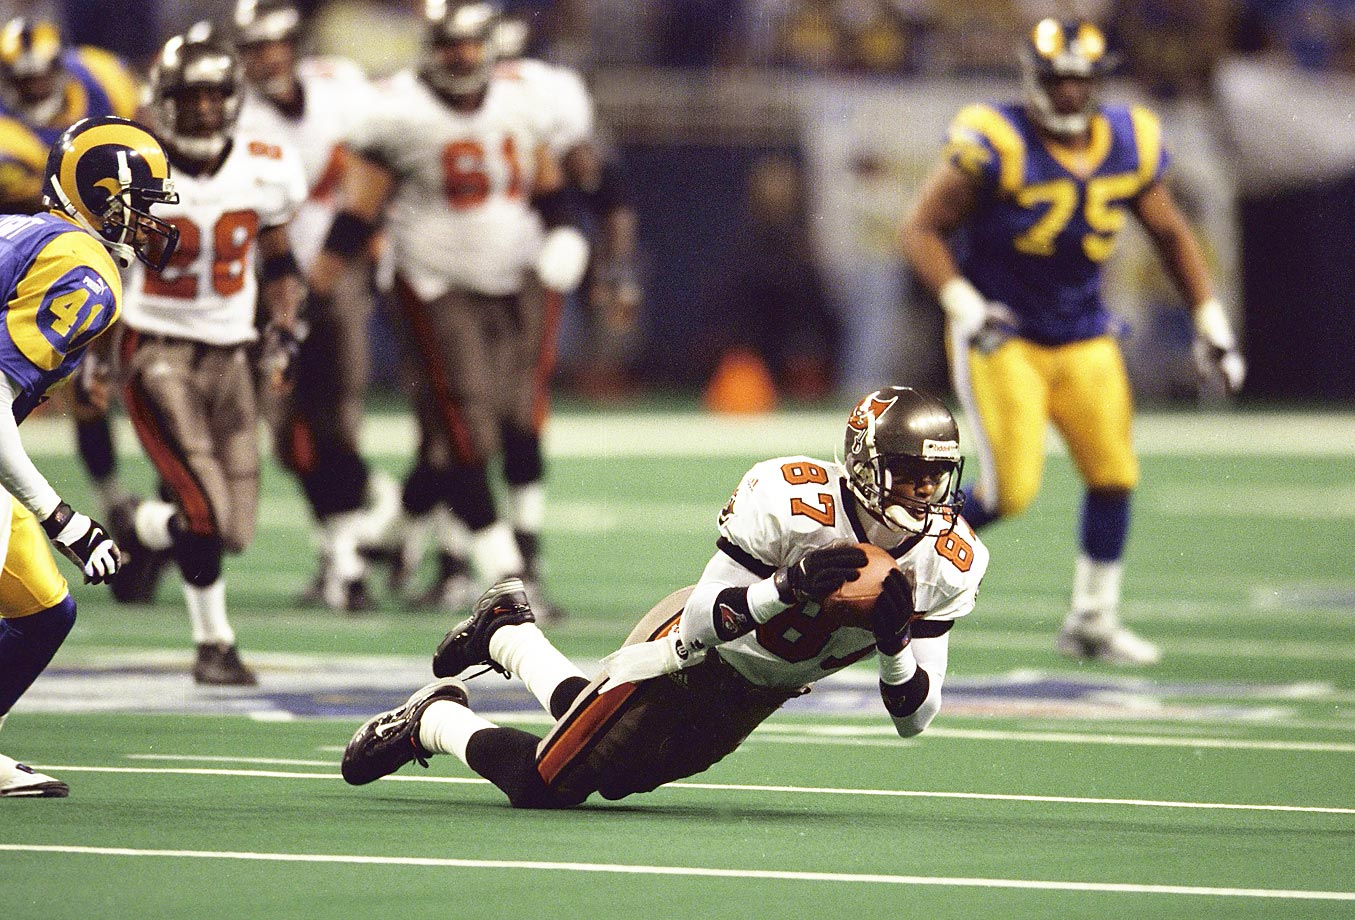 The ball can hit the ground and be considered a reception as long as the receiver maintains control of the ball. In the 1999 NFC Championship, Bert Emanuel's pass was ruled incomplete for touching the ground, and the Bucs lost the game two plays later. The controversial call prompted the NFL to enact the rule in the following season.